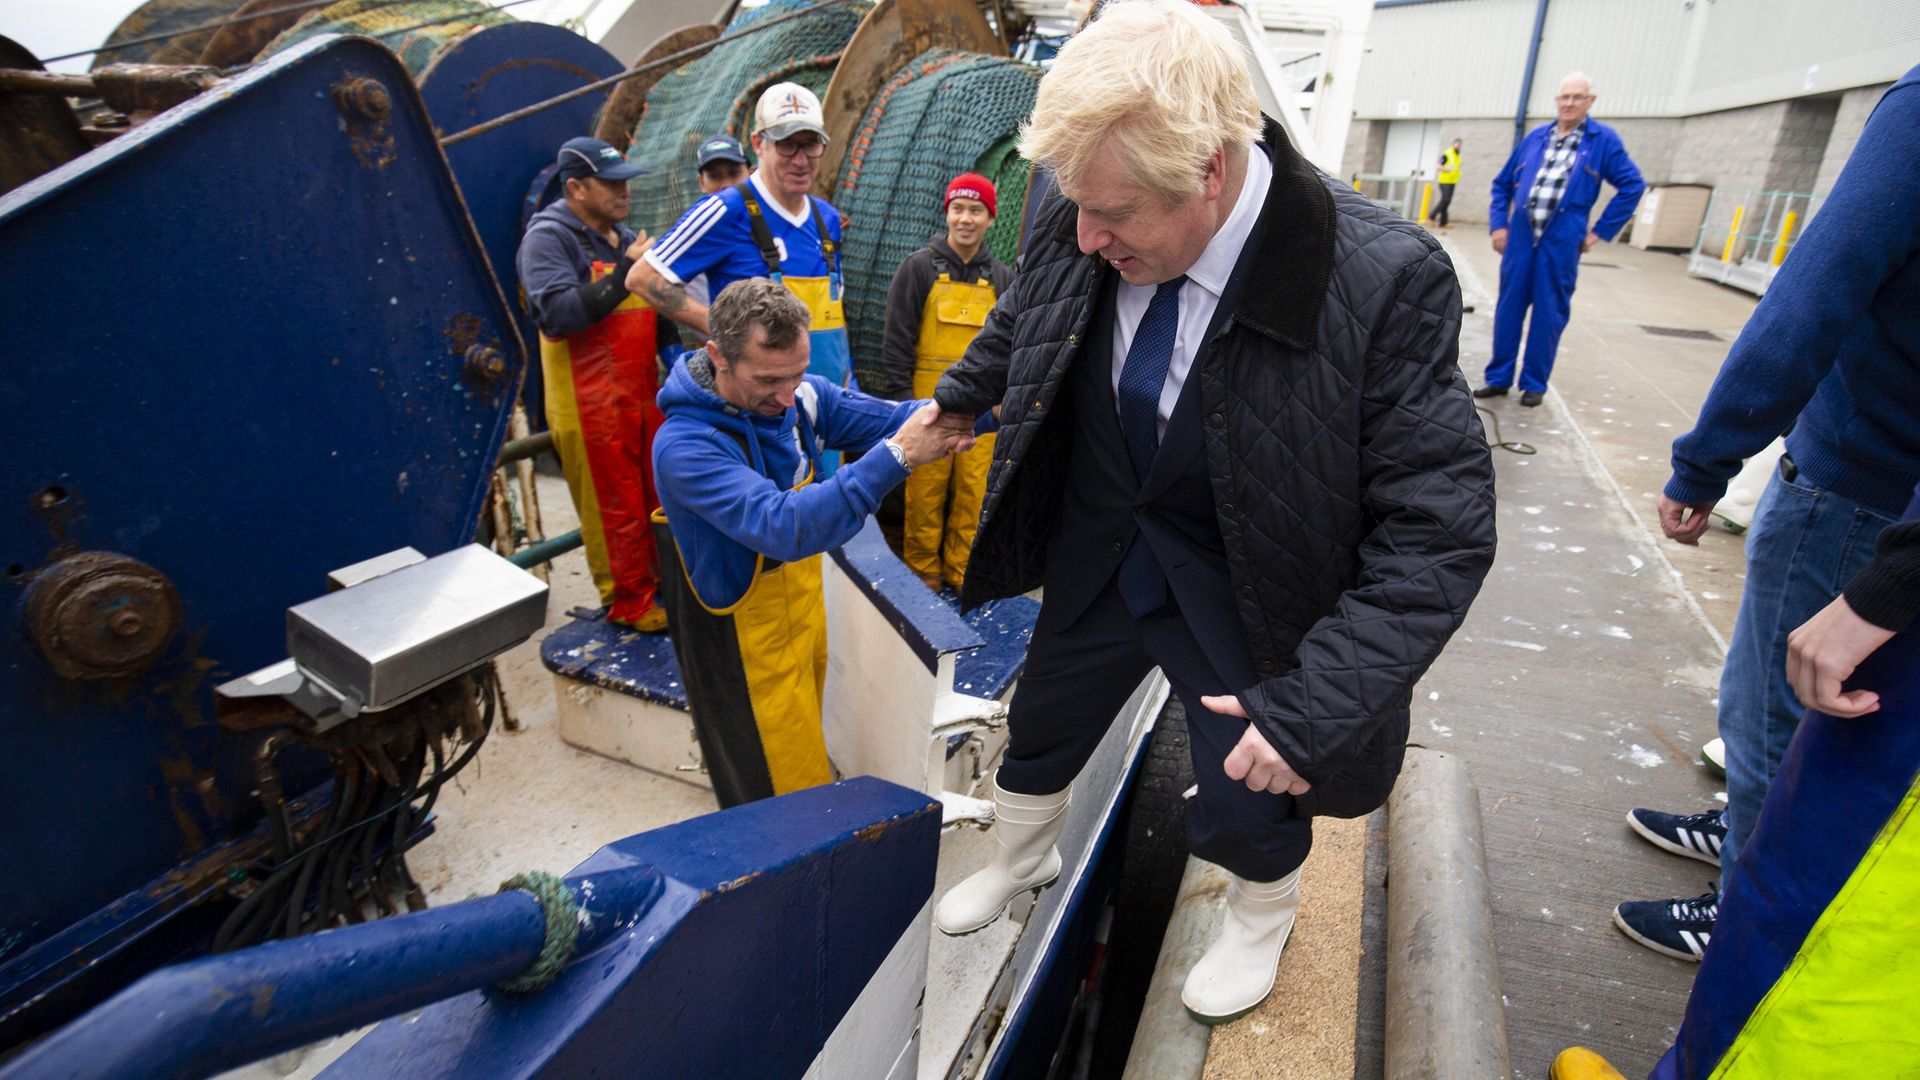 Prime Minister Boris Johnson on the Opportunis IV fishing trawler, during a visit to Peterhead fish market near Aberdeen - Credit: PA